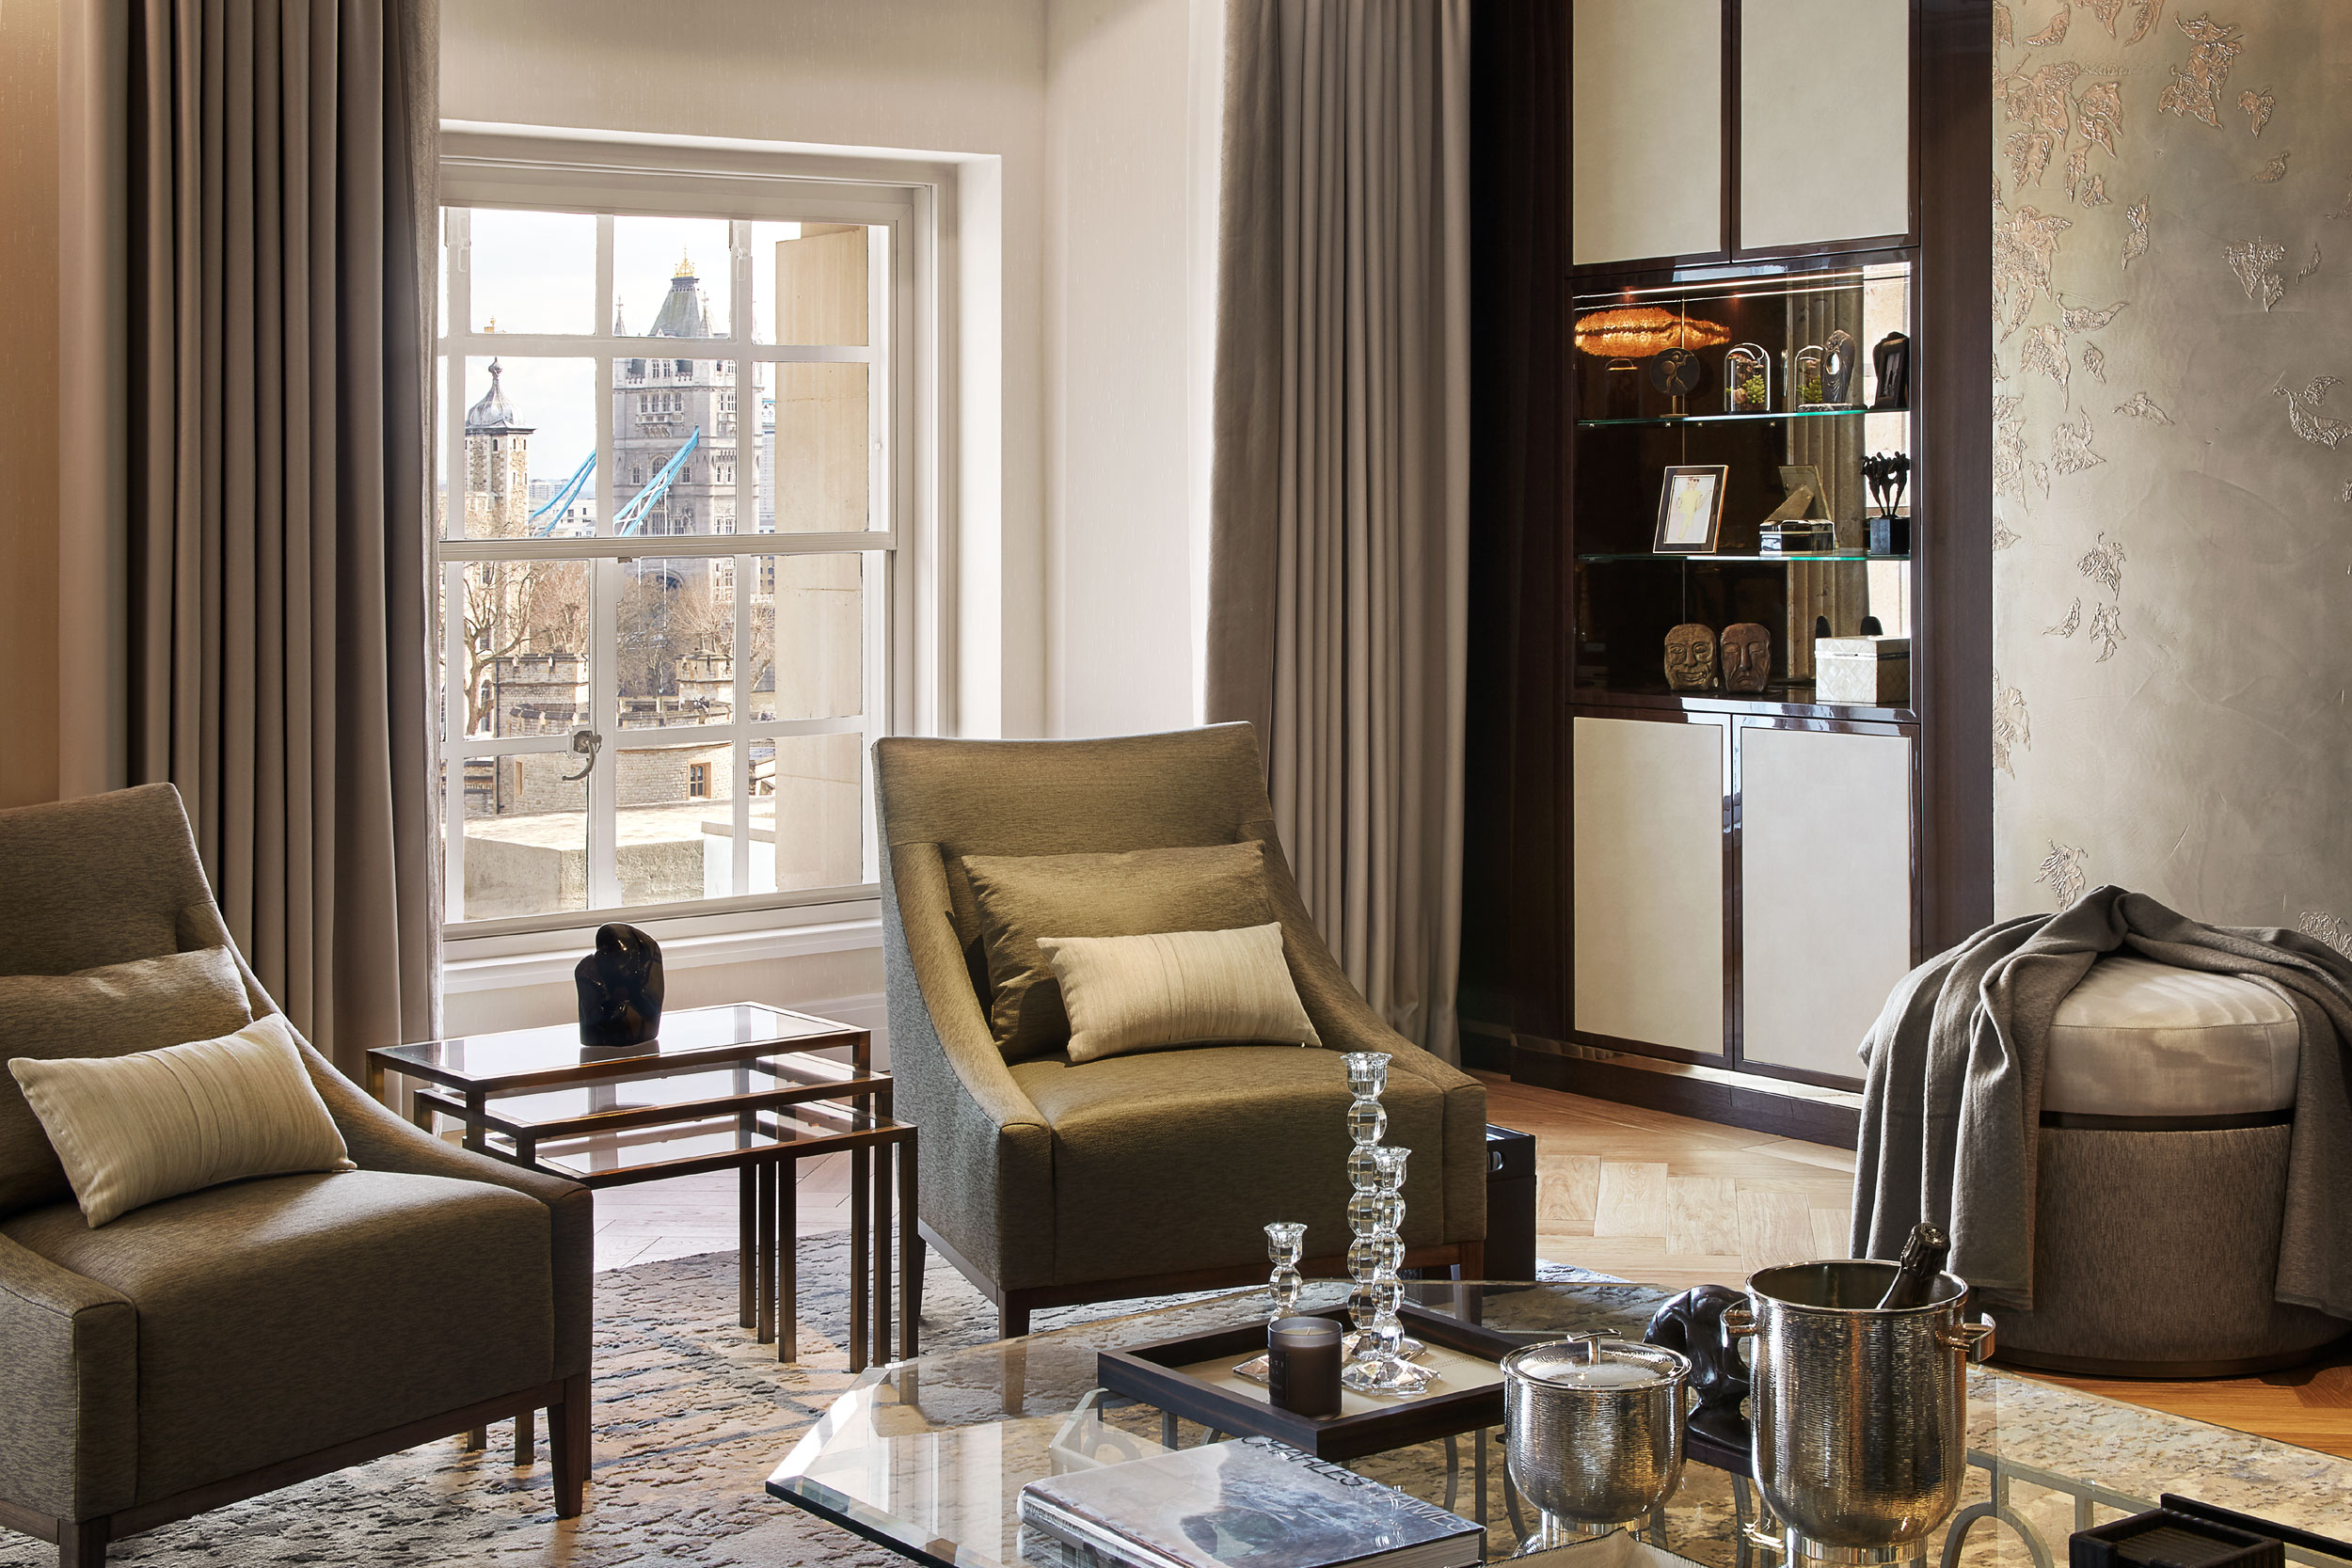 Residents also enjoy access to Ten Trinity Square Private Club, featuring the Château Latour Discovery Room and Château Latour Dining Room, a magnificent ballroom, meeting rooms, bar, cigar lounge, and billiards room.